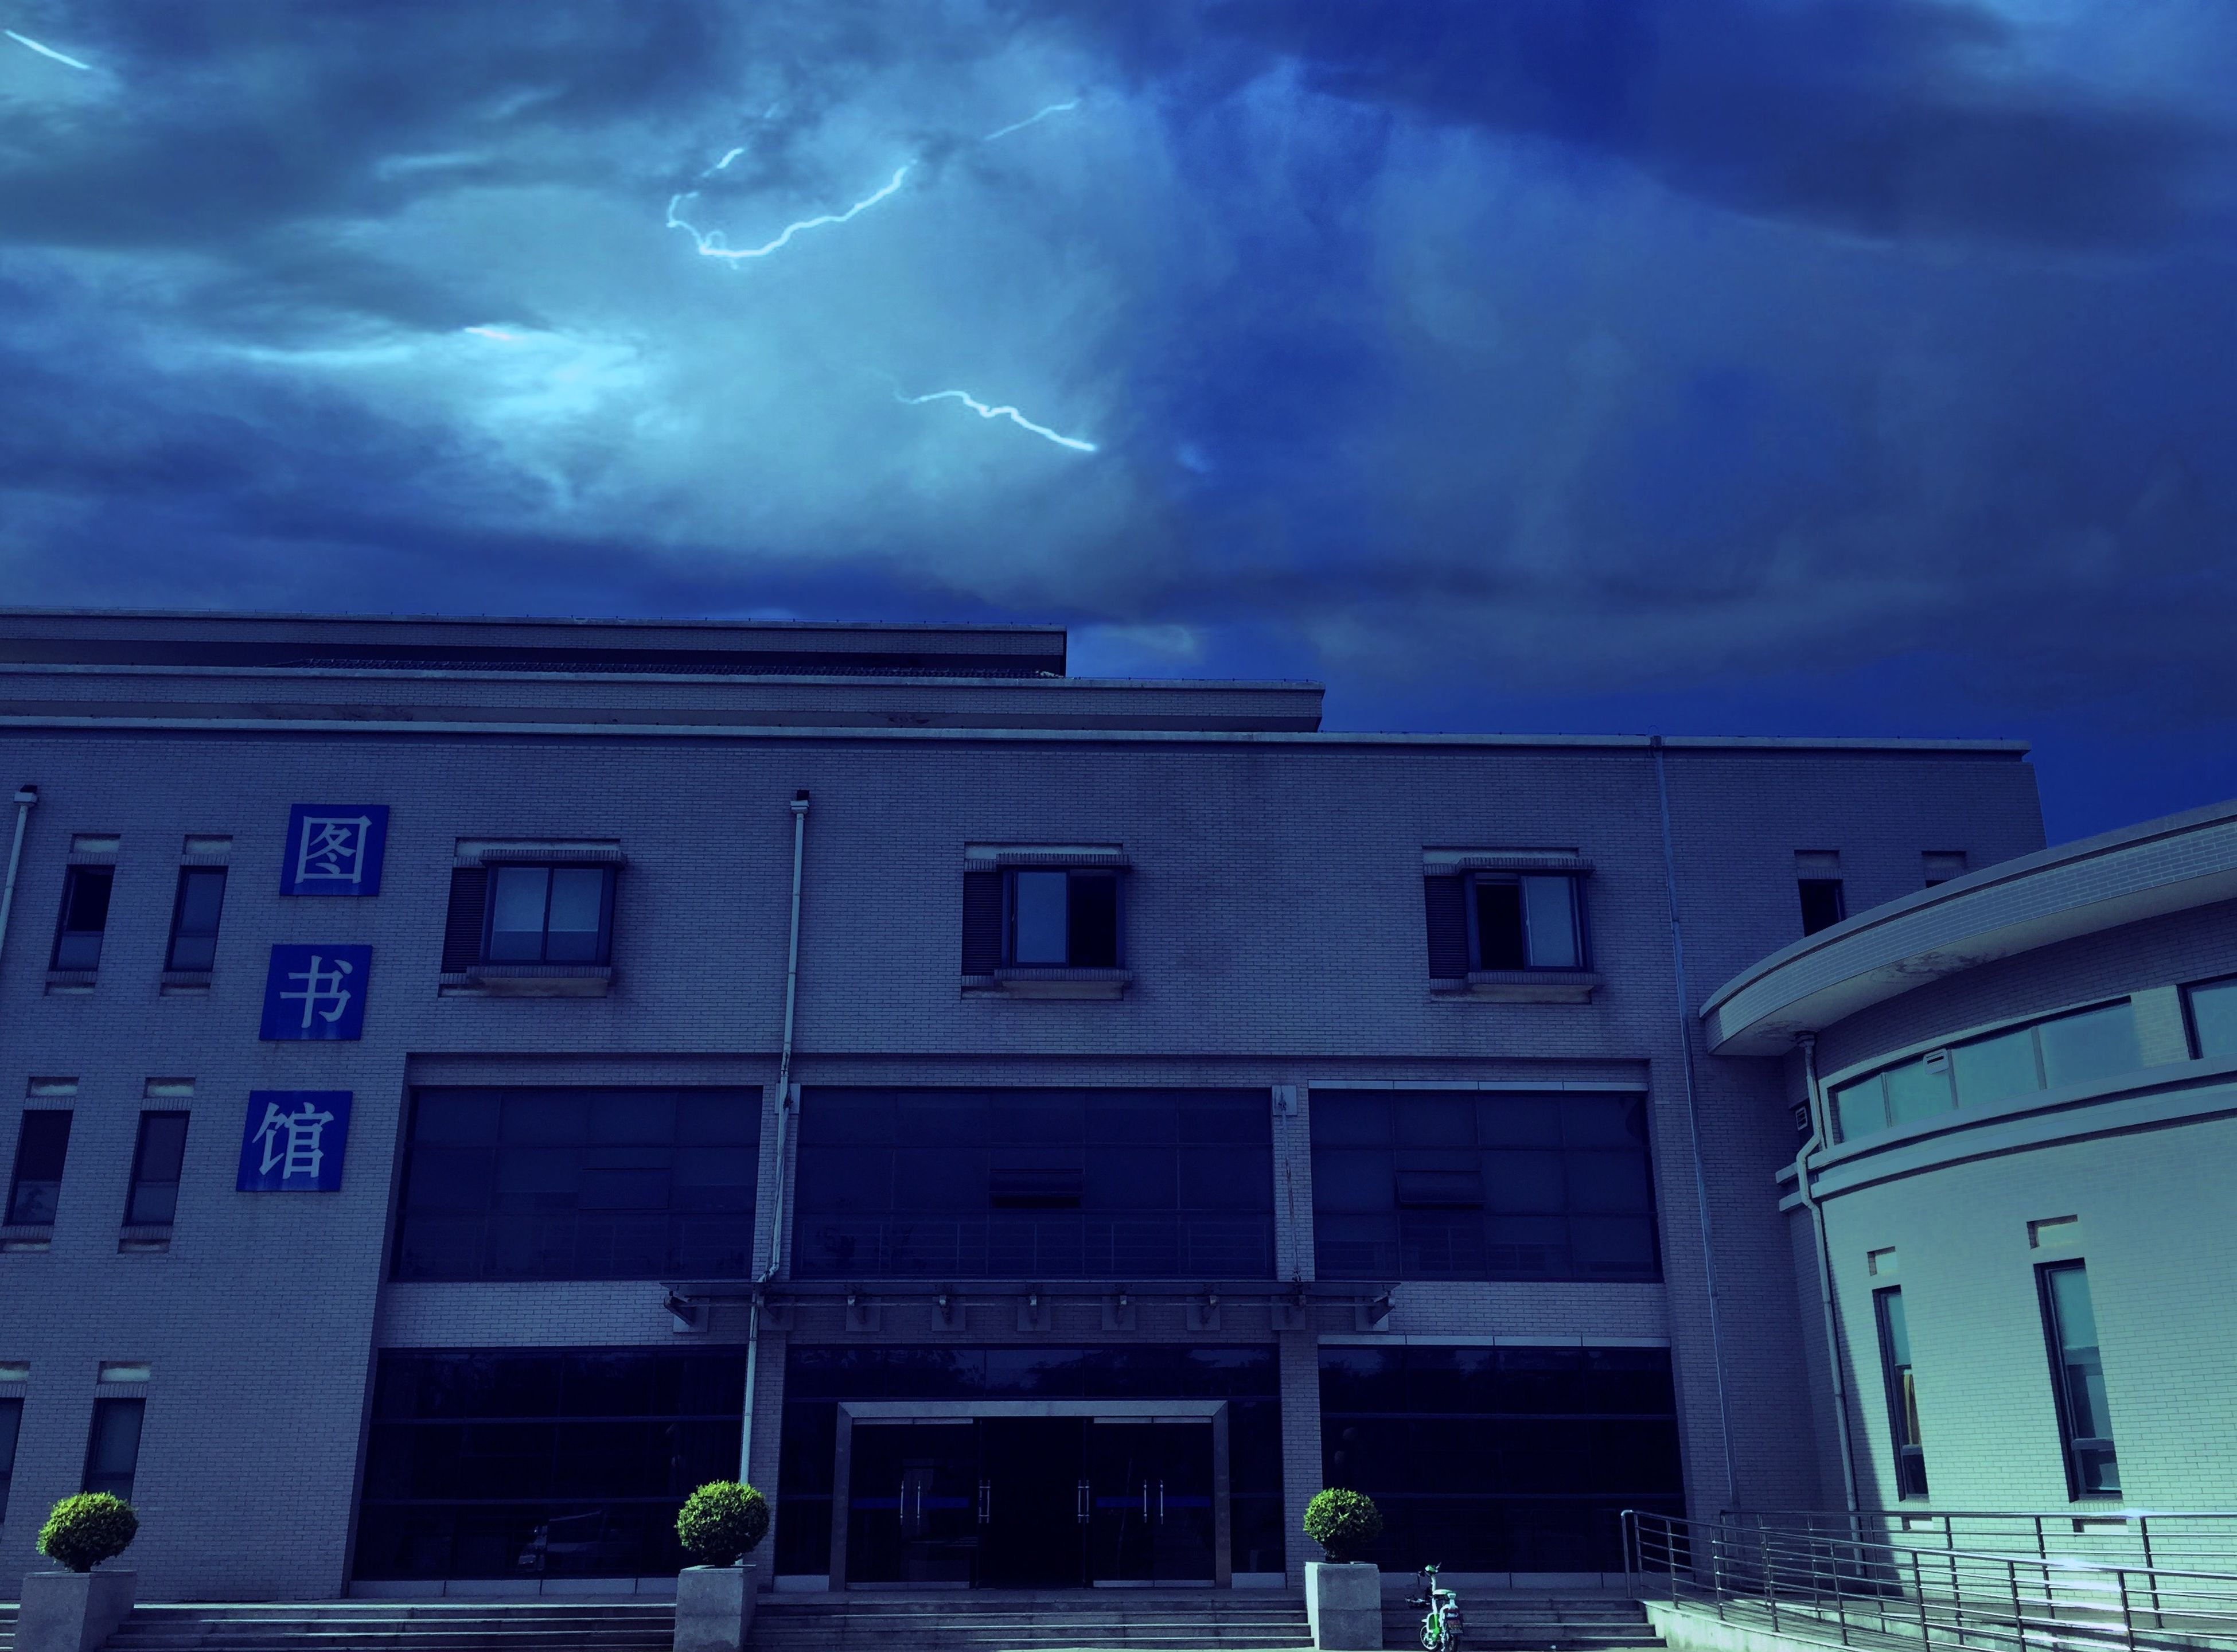 building exterior, architecture, sky, built structure, cloud - sky, cloudy, low angle view, cloud, weather, building, storm cloud, window, residential building, overcast, city, street light, dusk, residential structure, outdoors, no people